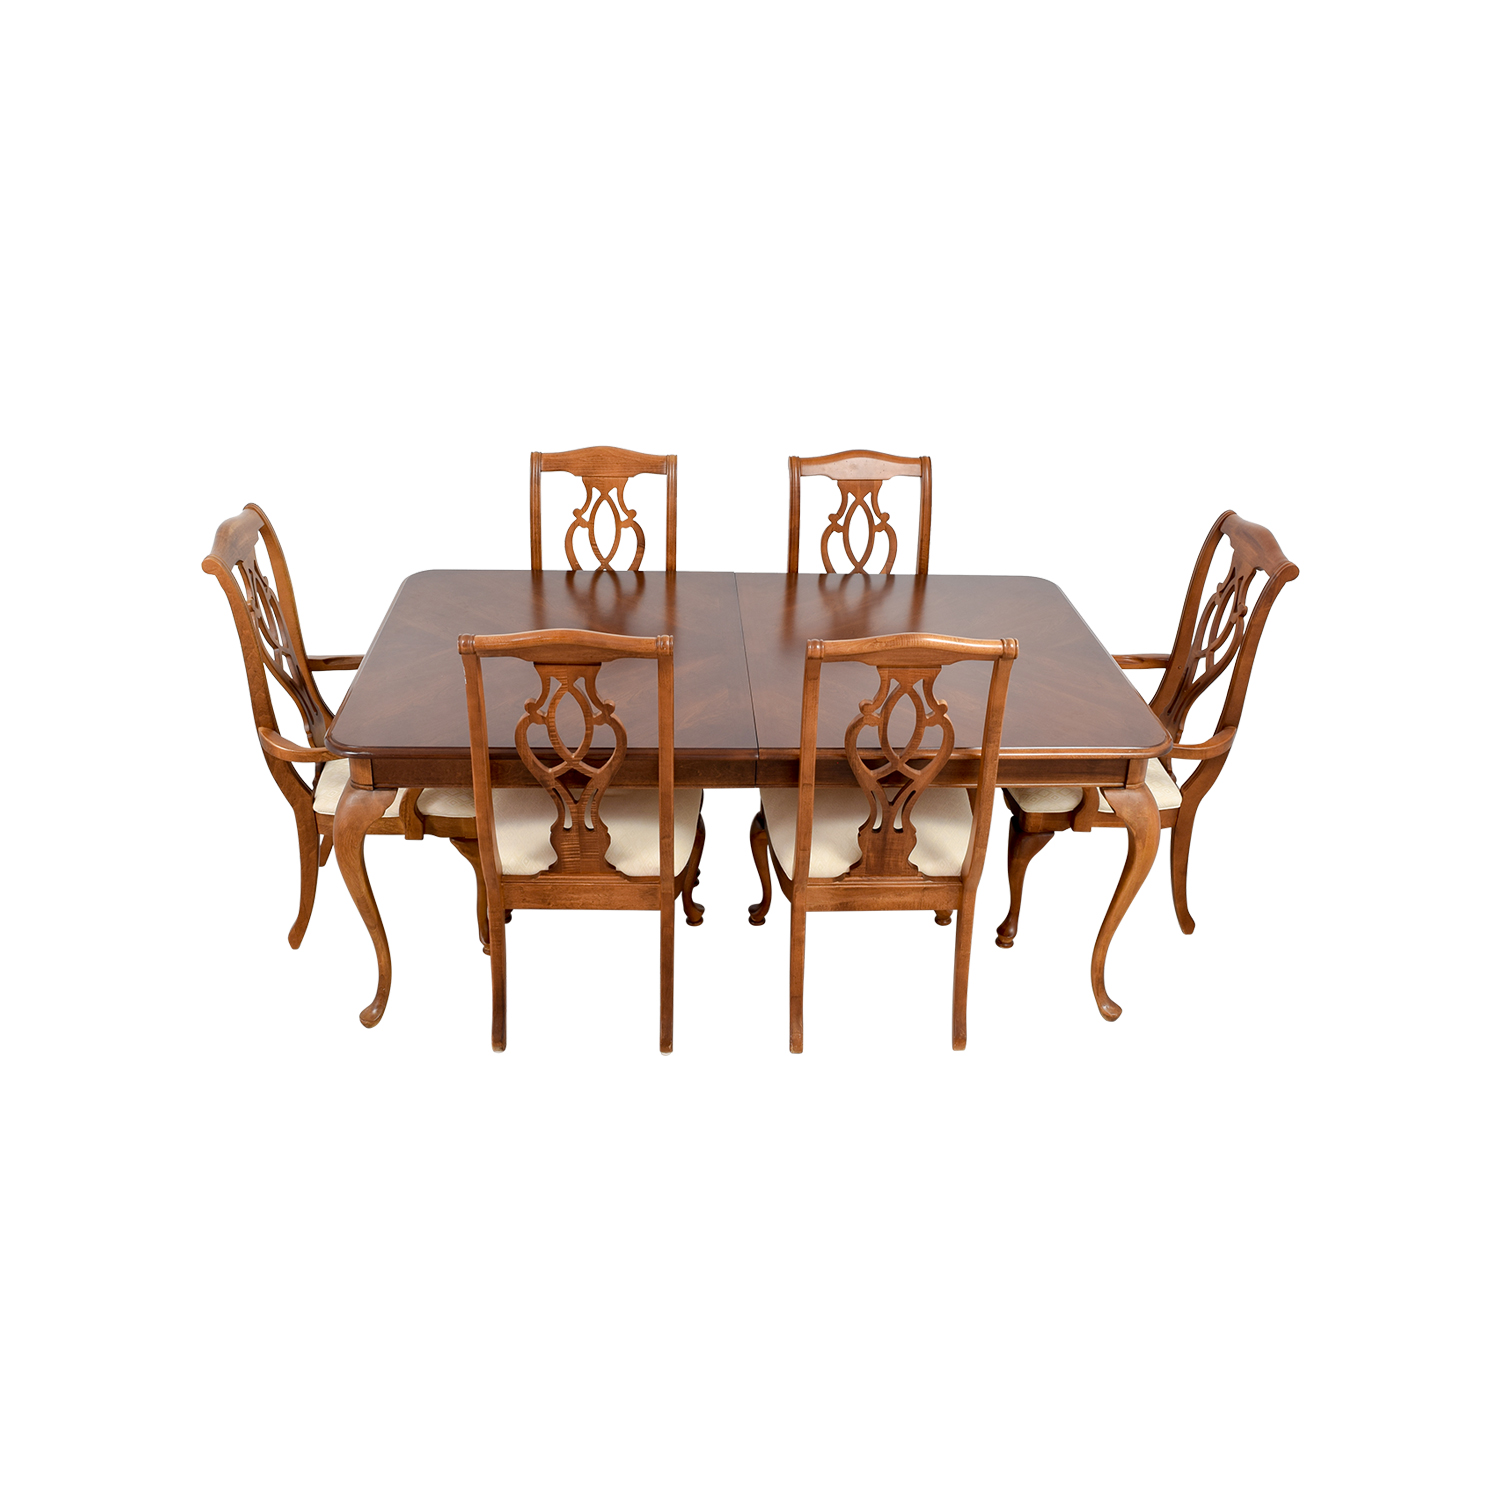 buy American Drew American Drew Dining Table Set online